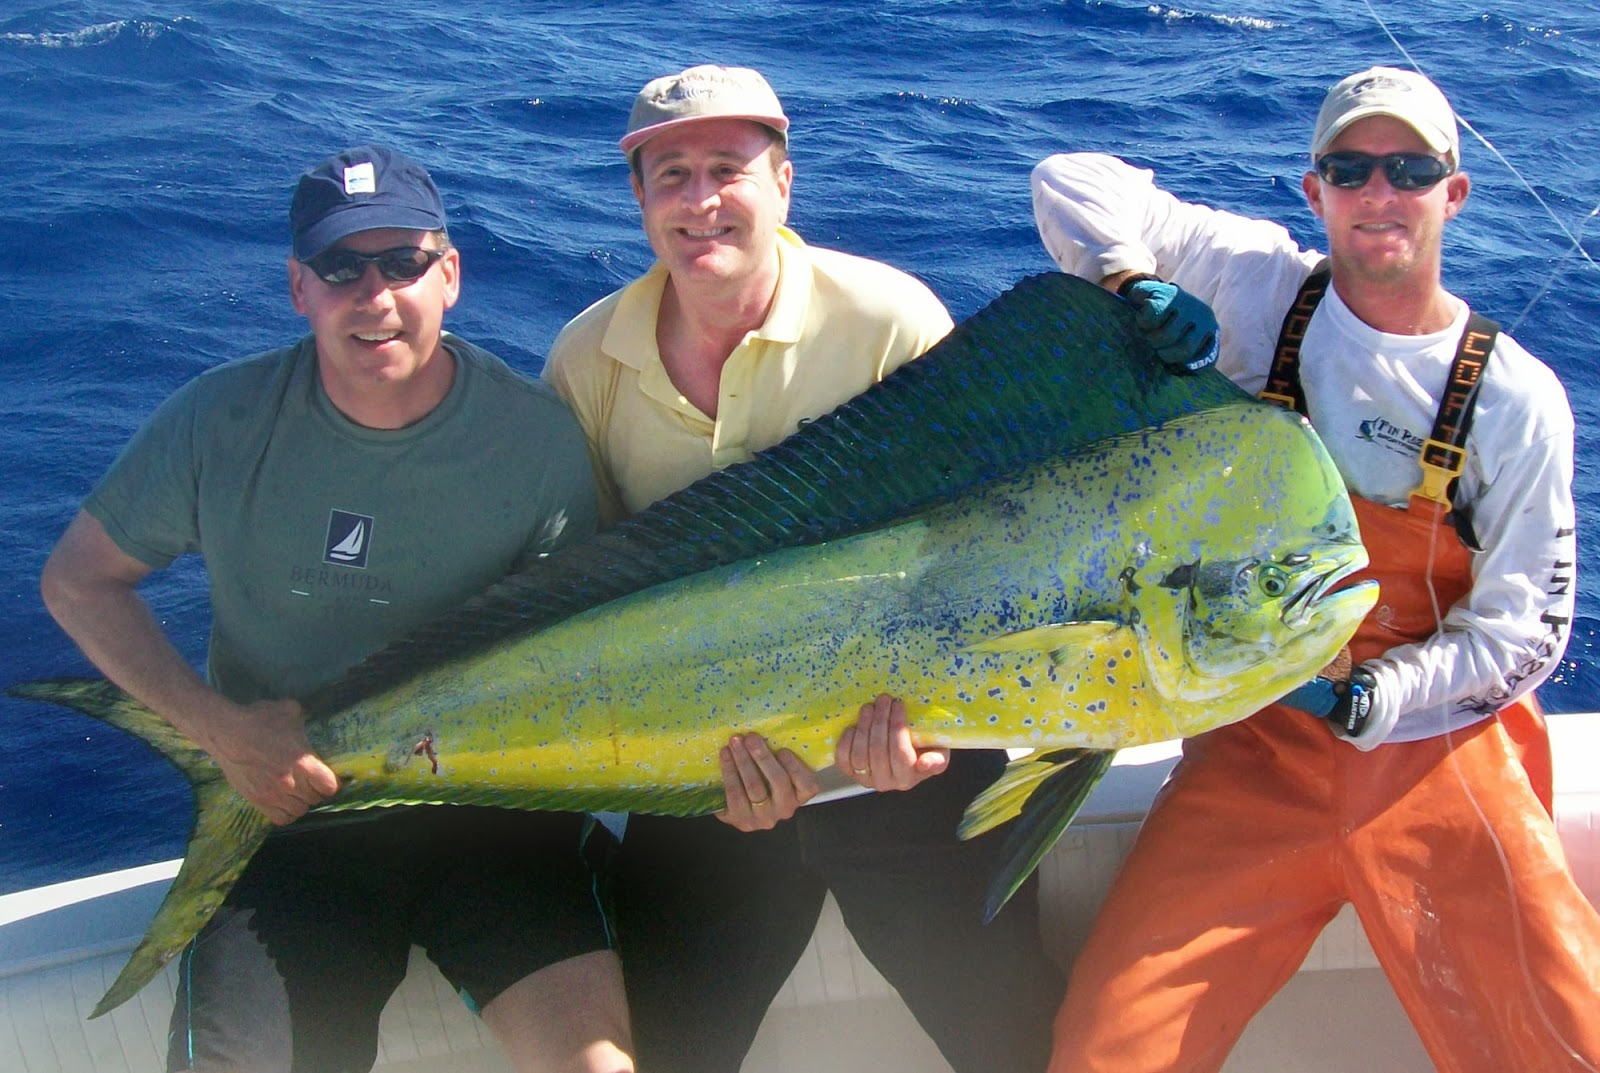 mahi mahi fishes world hd images free photos